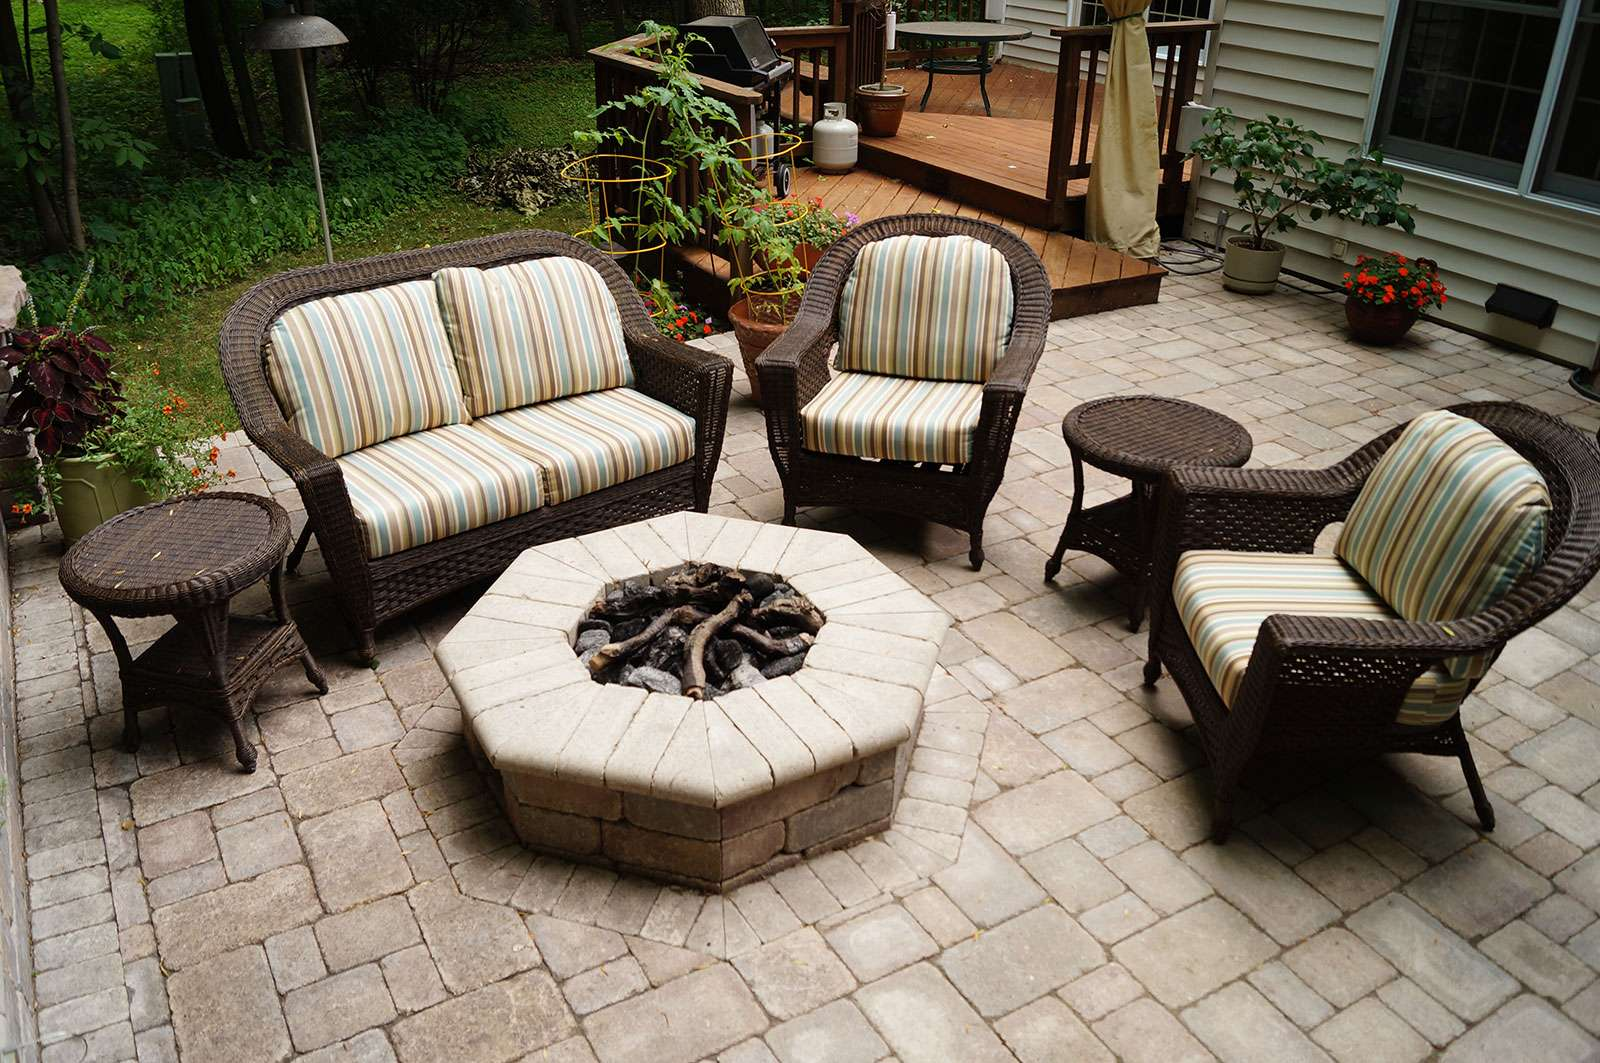 Patio Furniture Appleton Wi Patio Furniture Appleton Wi Chicpeastudio